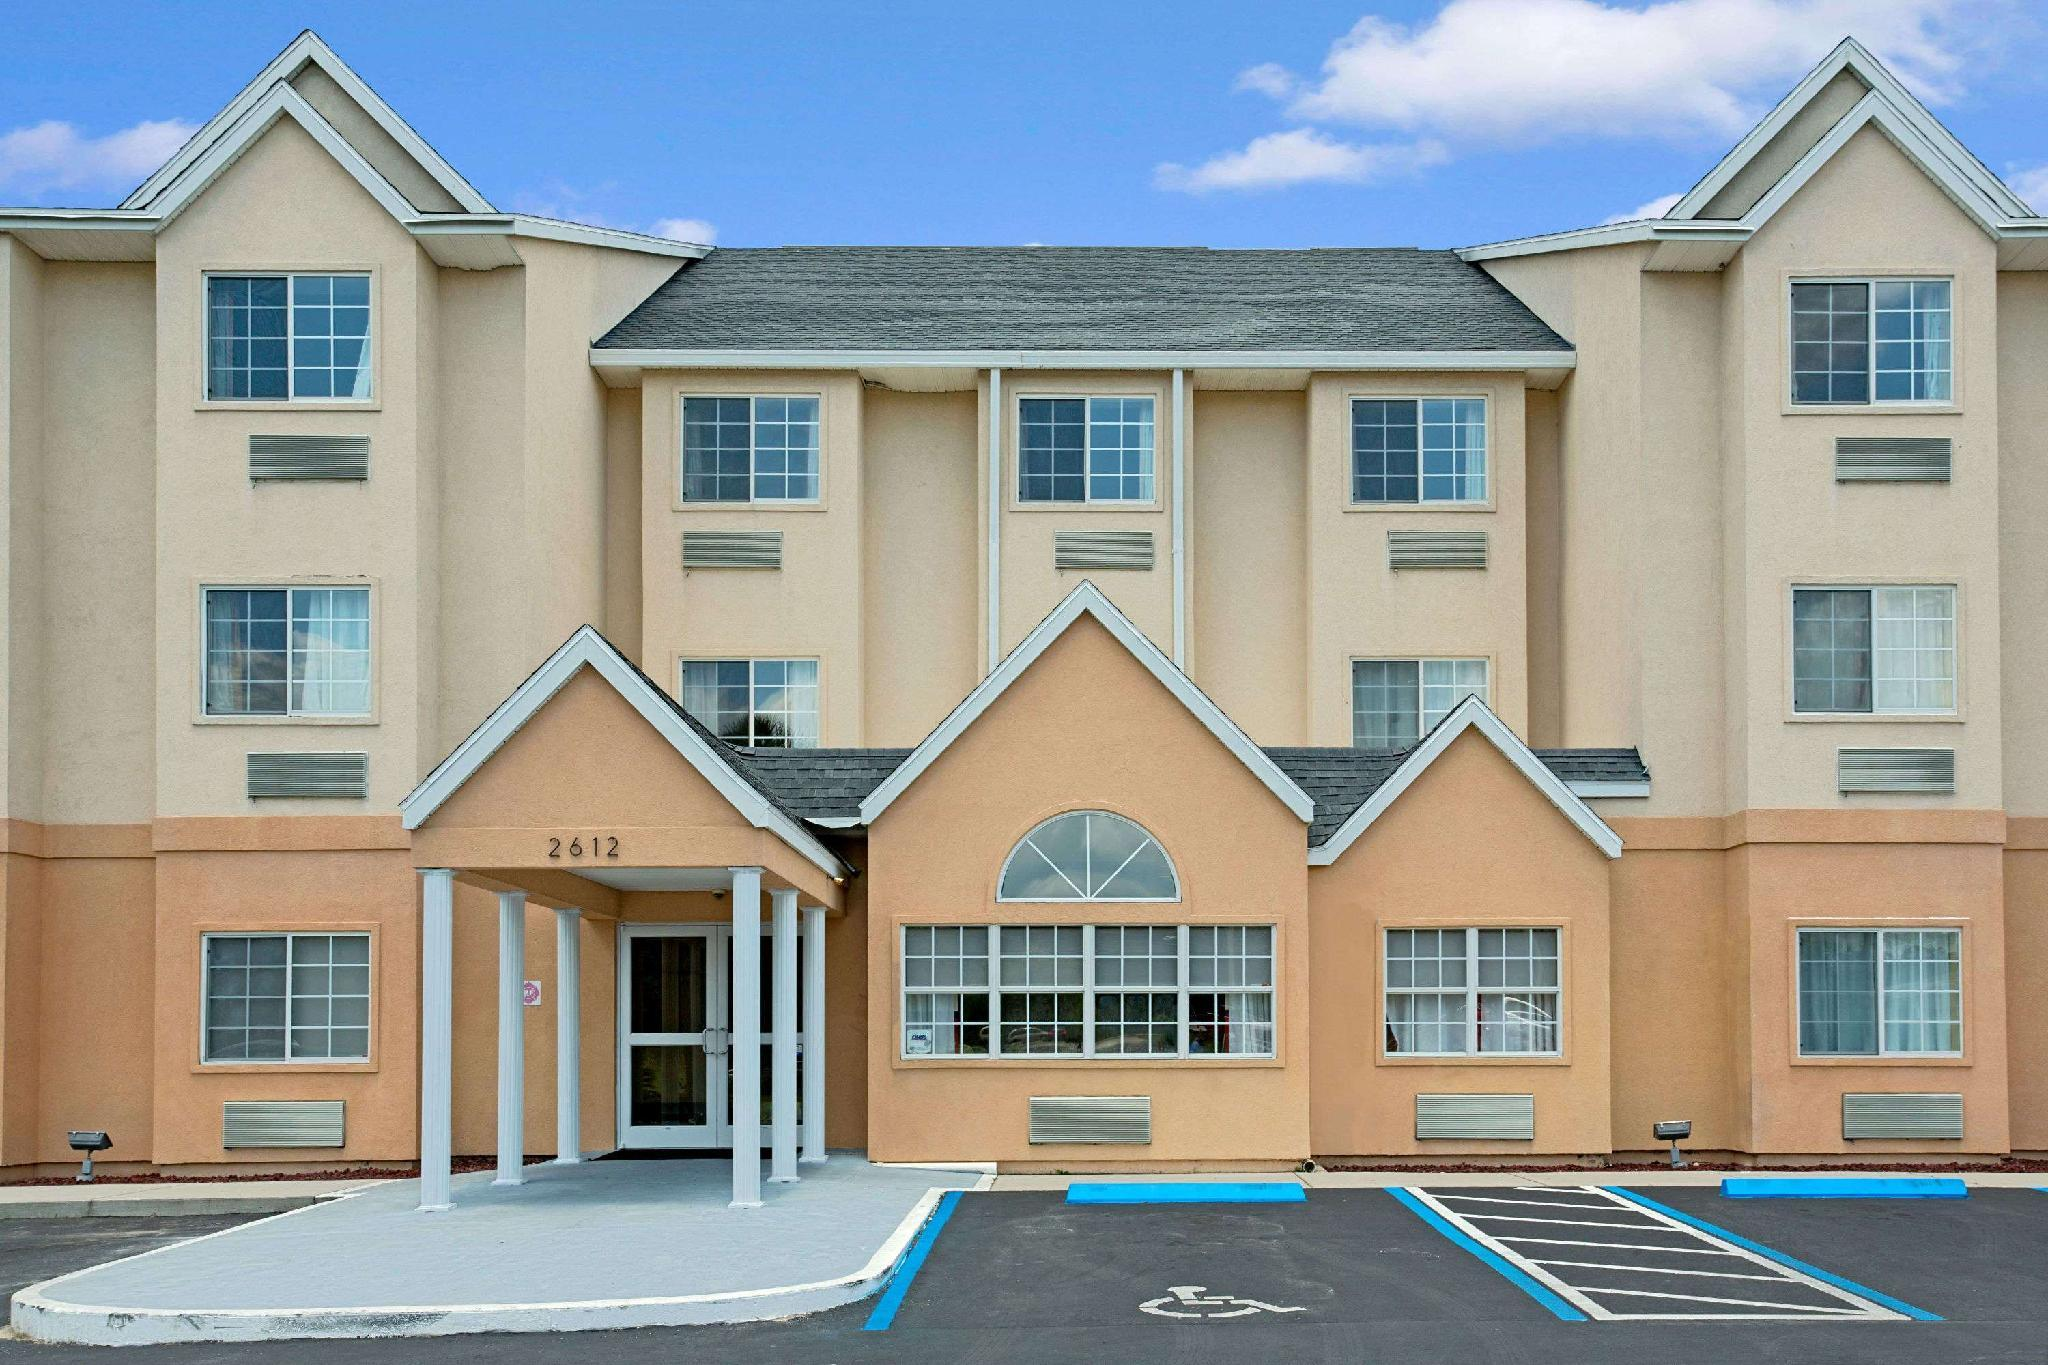 Microtel Inn And Suites By Wyndham Bushnell